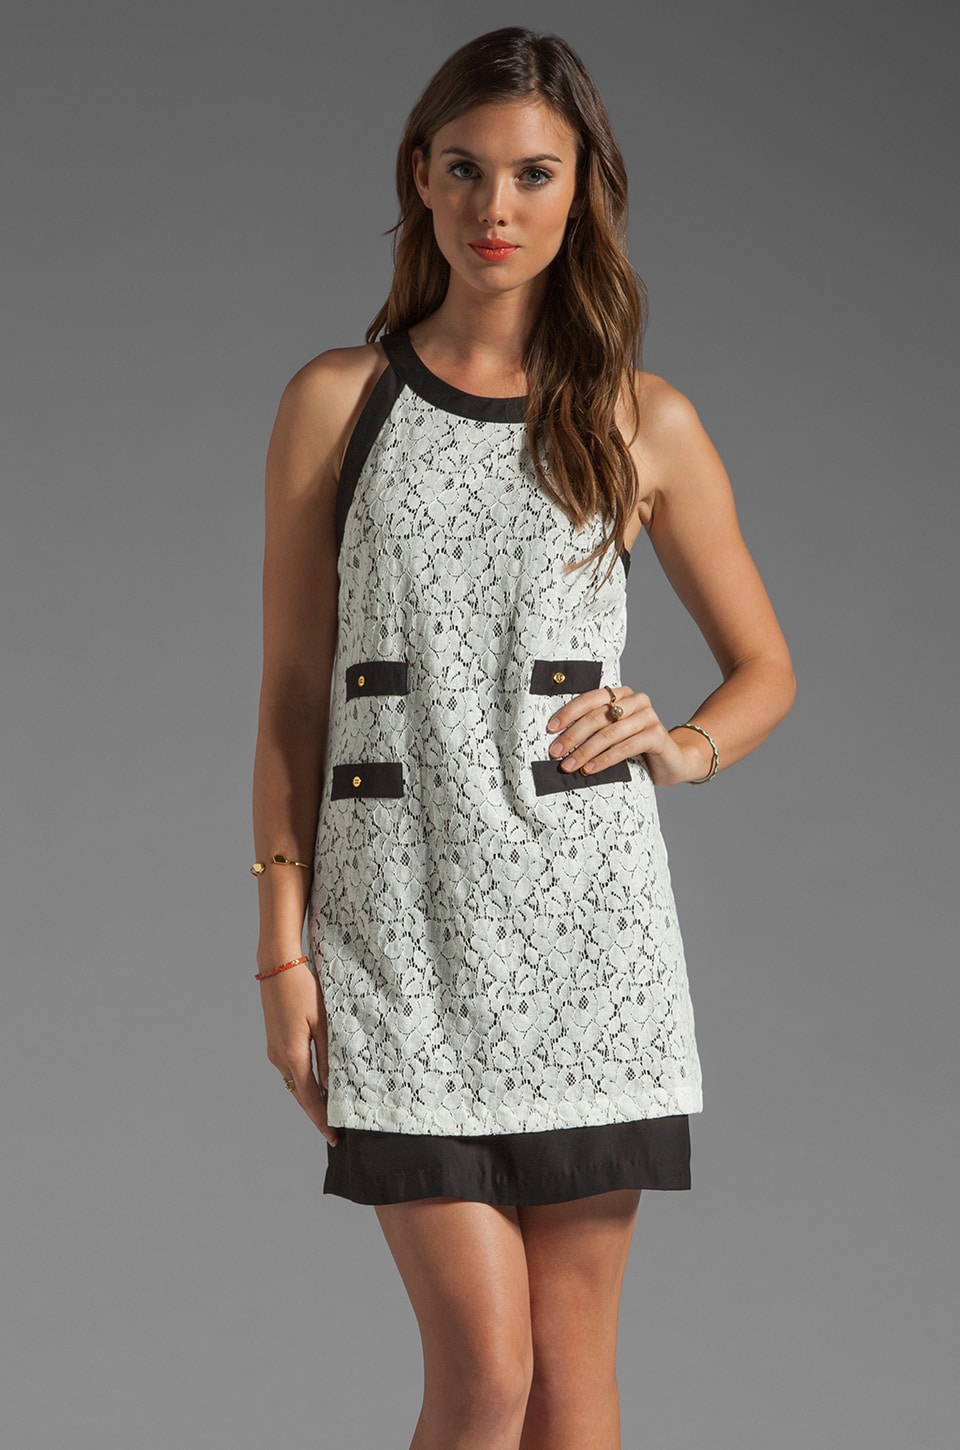 Central Park West Nantucket Lace Dress in Ivory